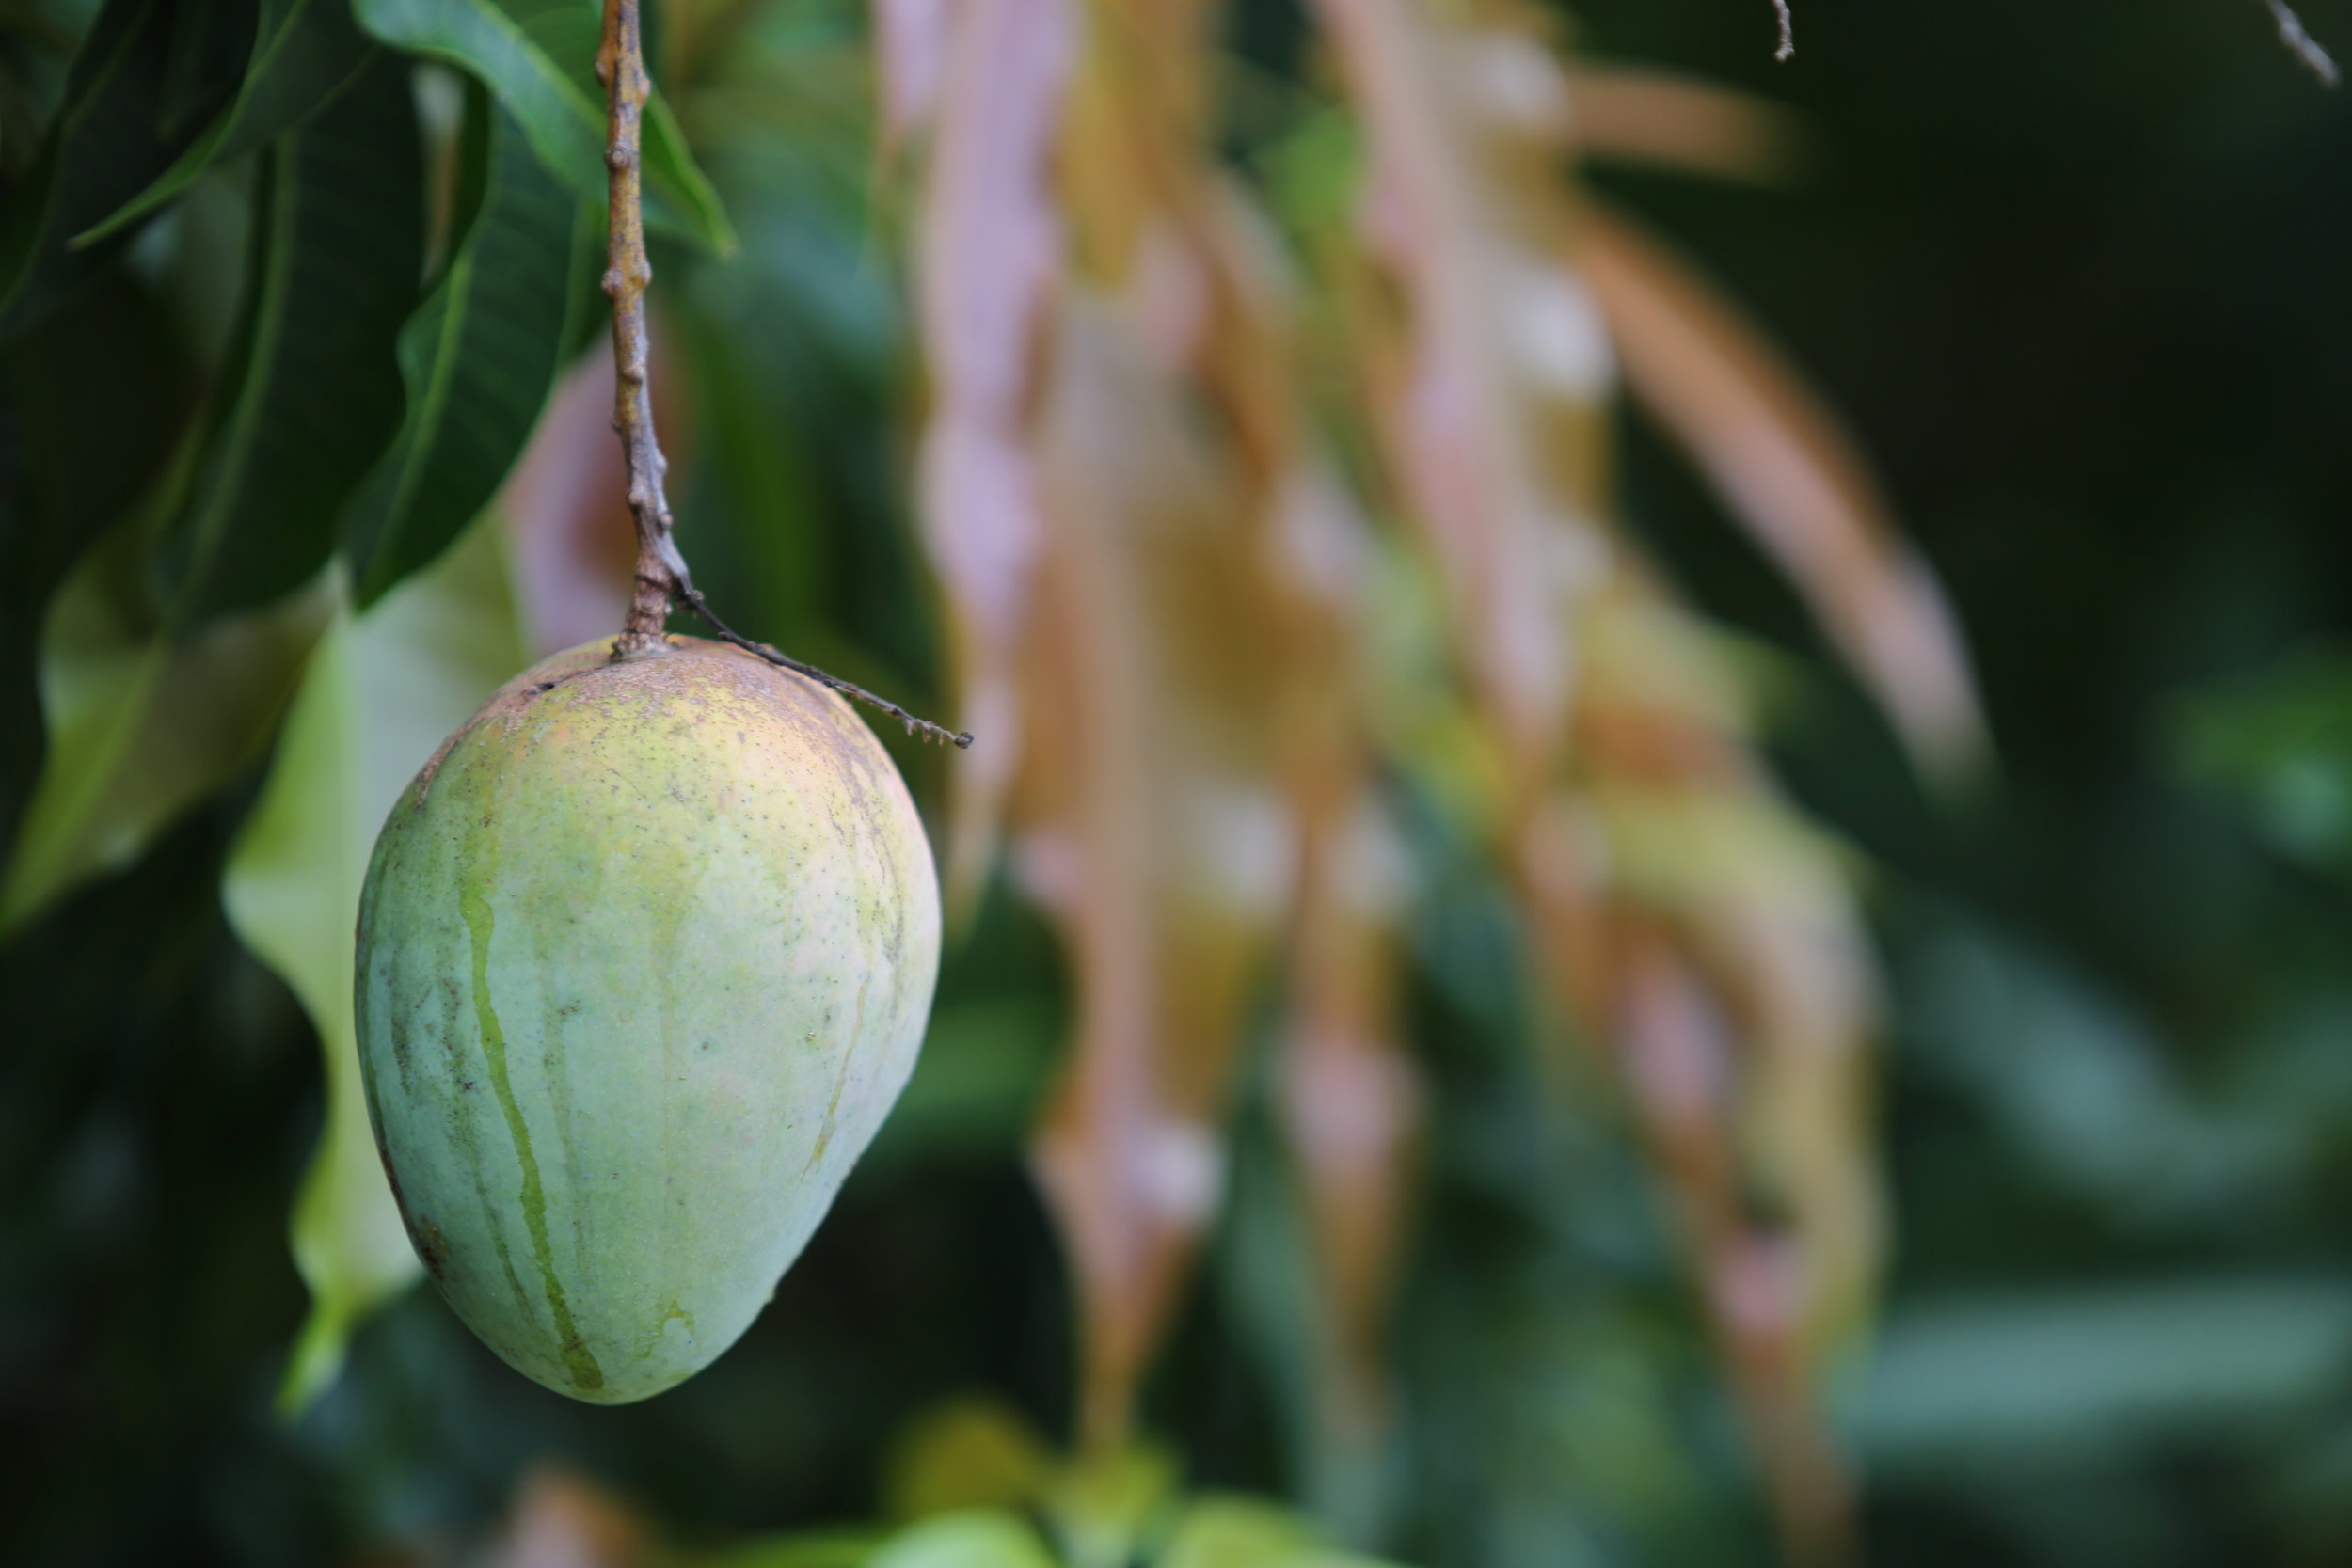 A mango hangs from a tree near the start of the tour path. Mango trees are plentiful at ECHO and line many paths on the farm.